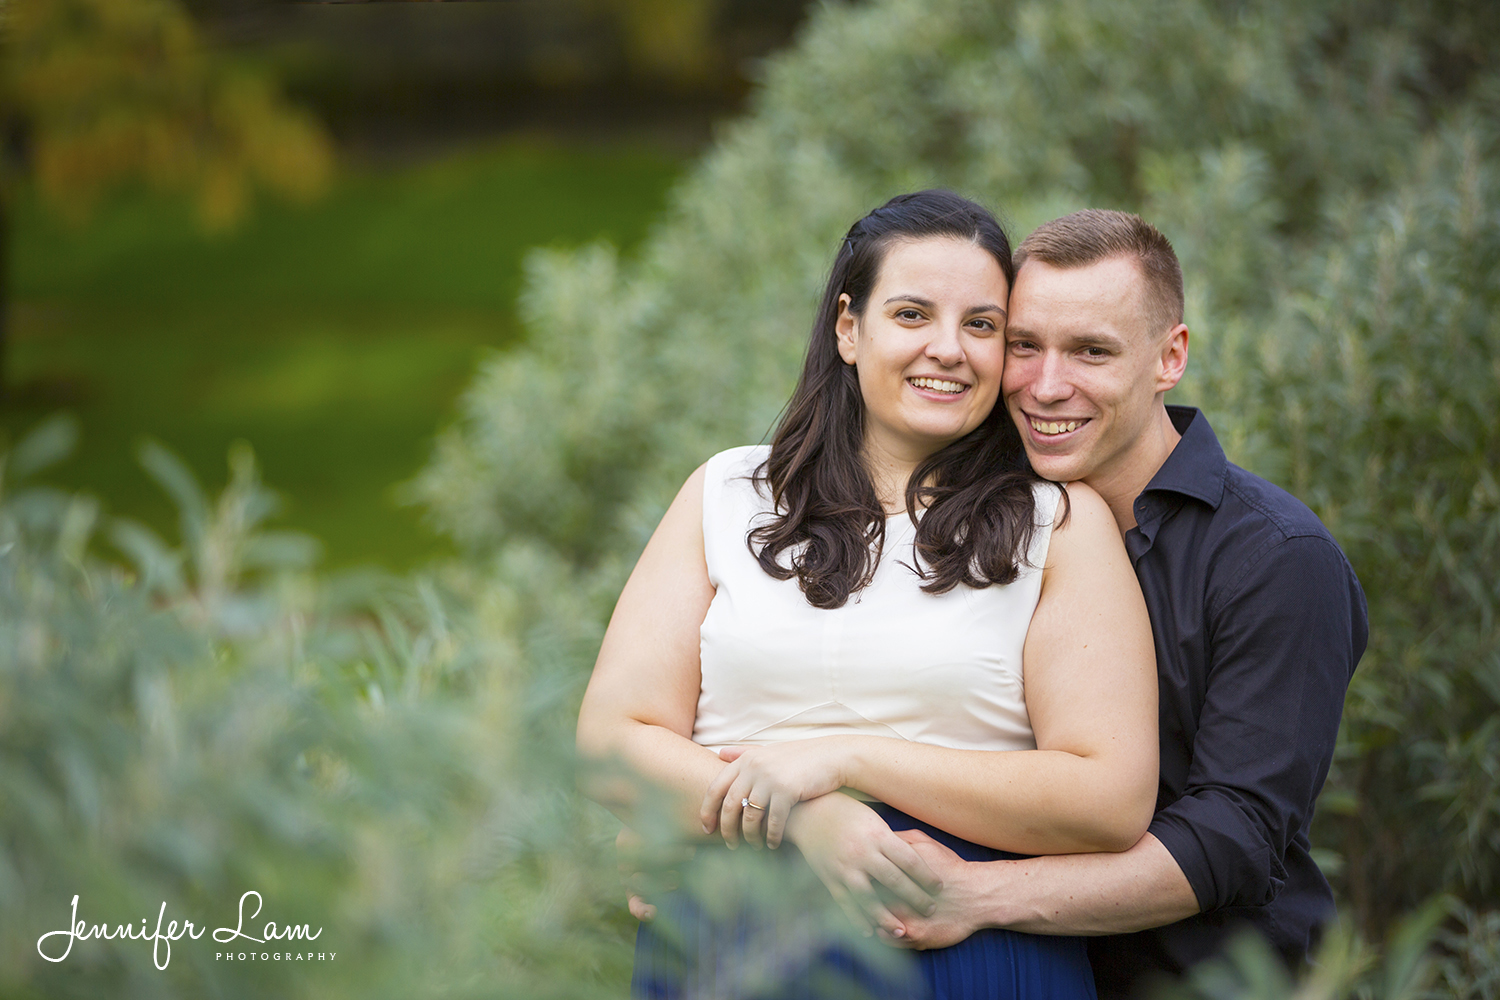 Engagement Session - Sydney Wedding Photographer - Jennifer Lam Photography (5).jpg